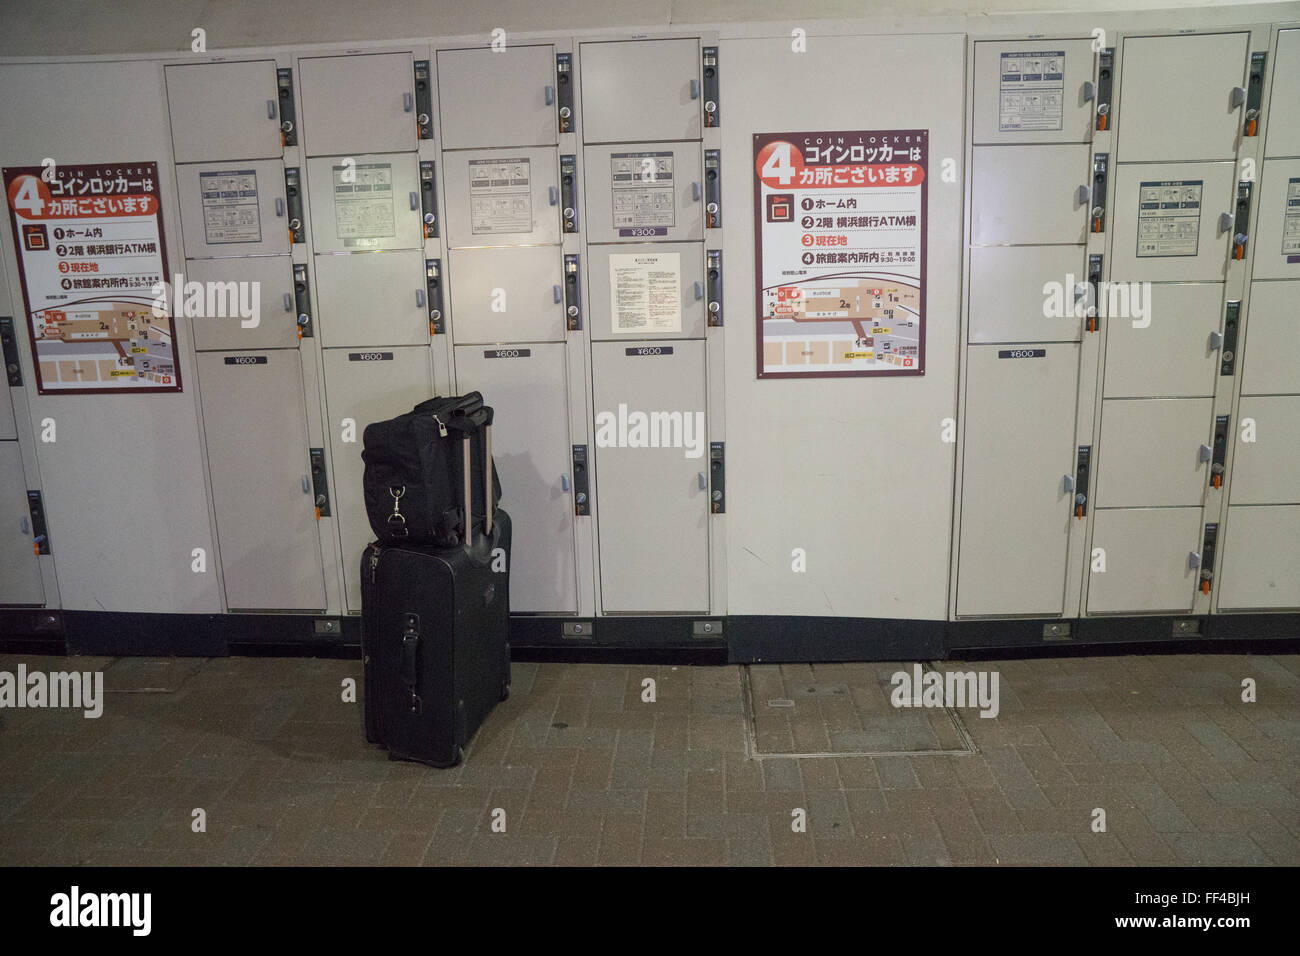 station luggage storage stockfotos station luggage storage bilder alamy. Black Bedroom Furniture Sets. Home Design Ideas